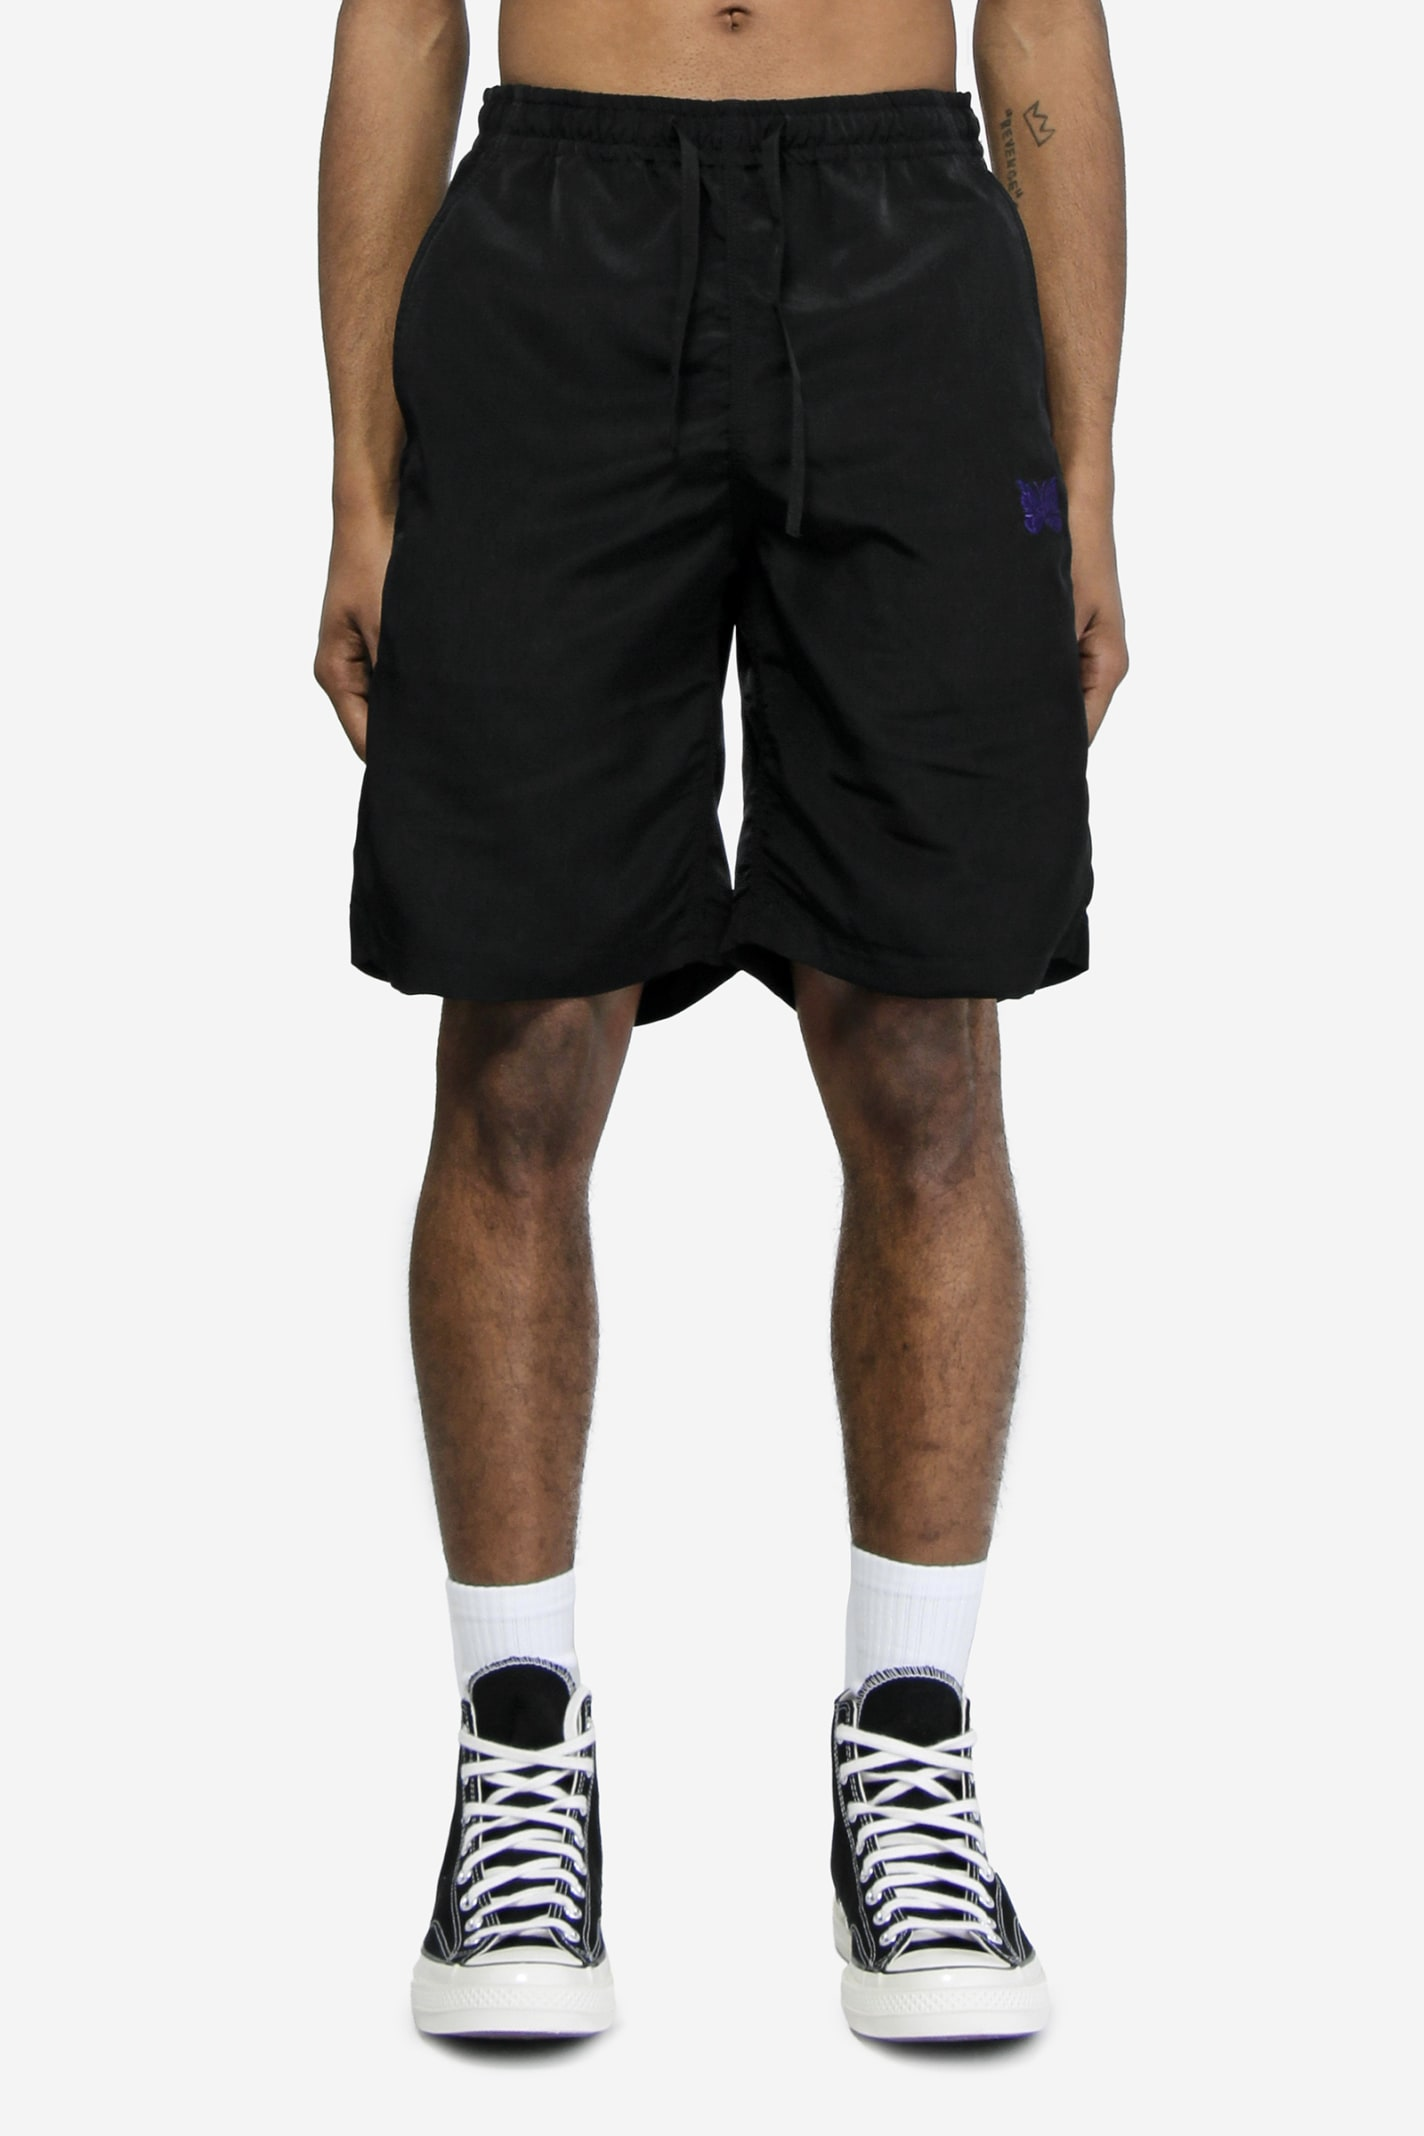 Needles Basketball Shorts